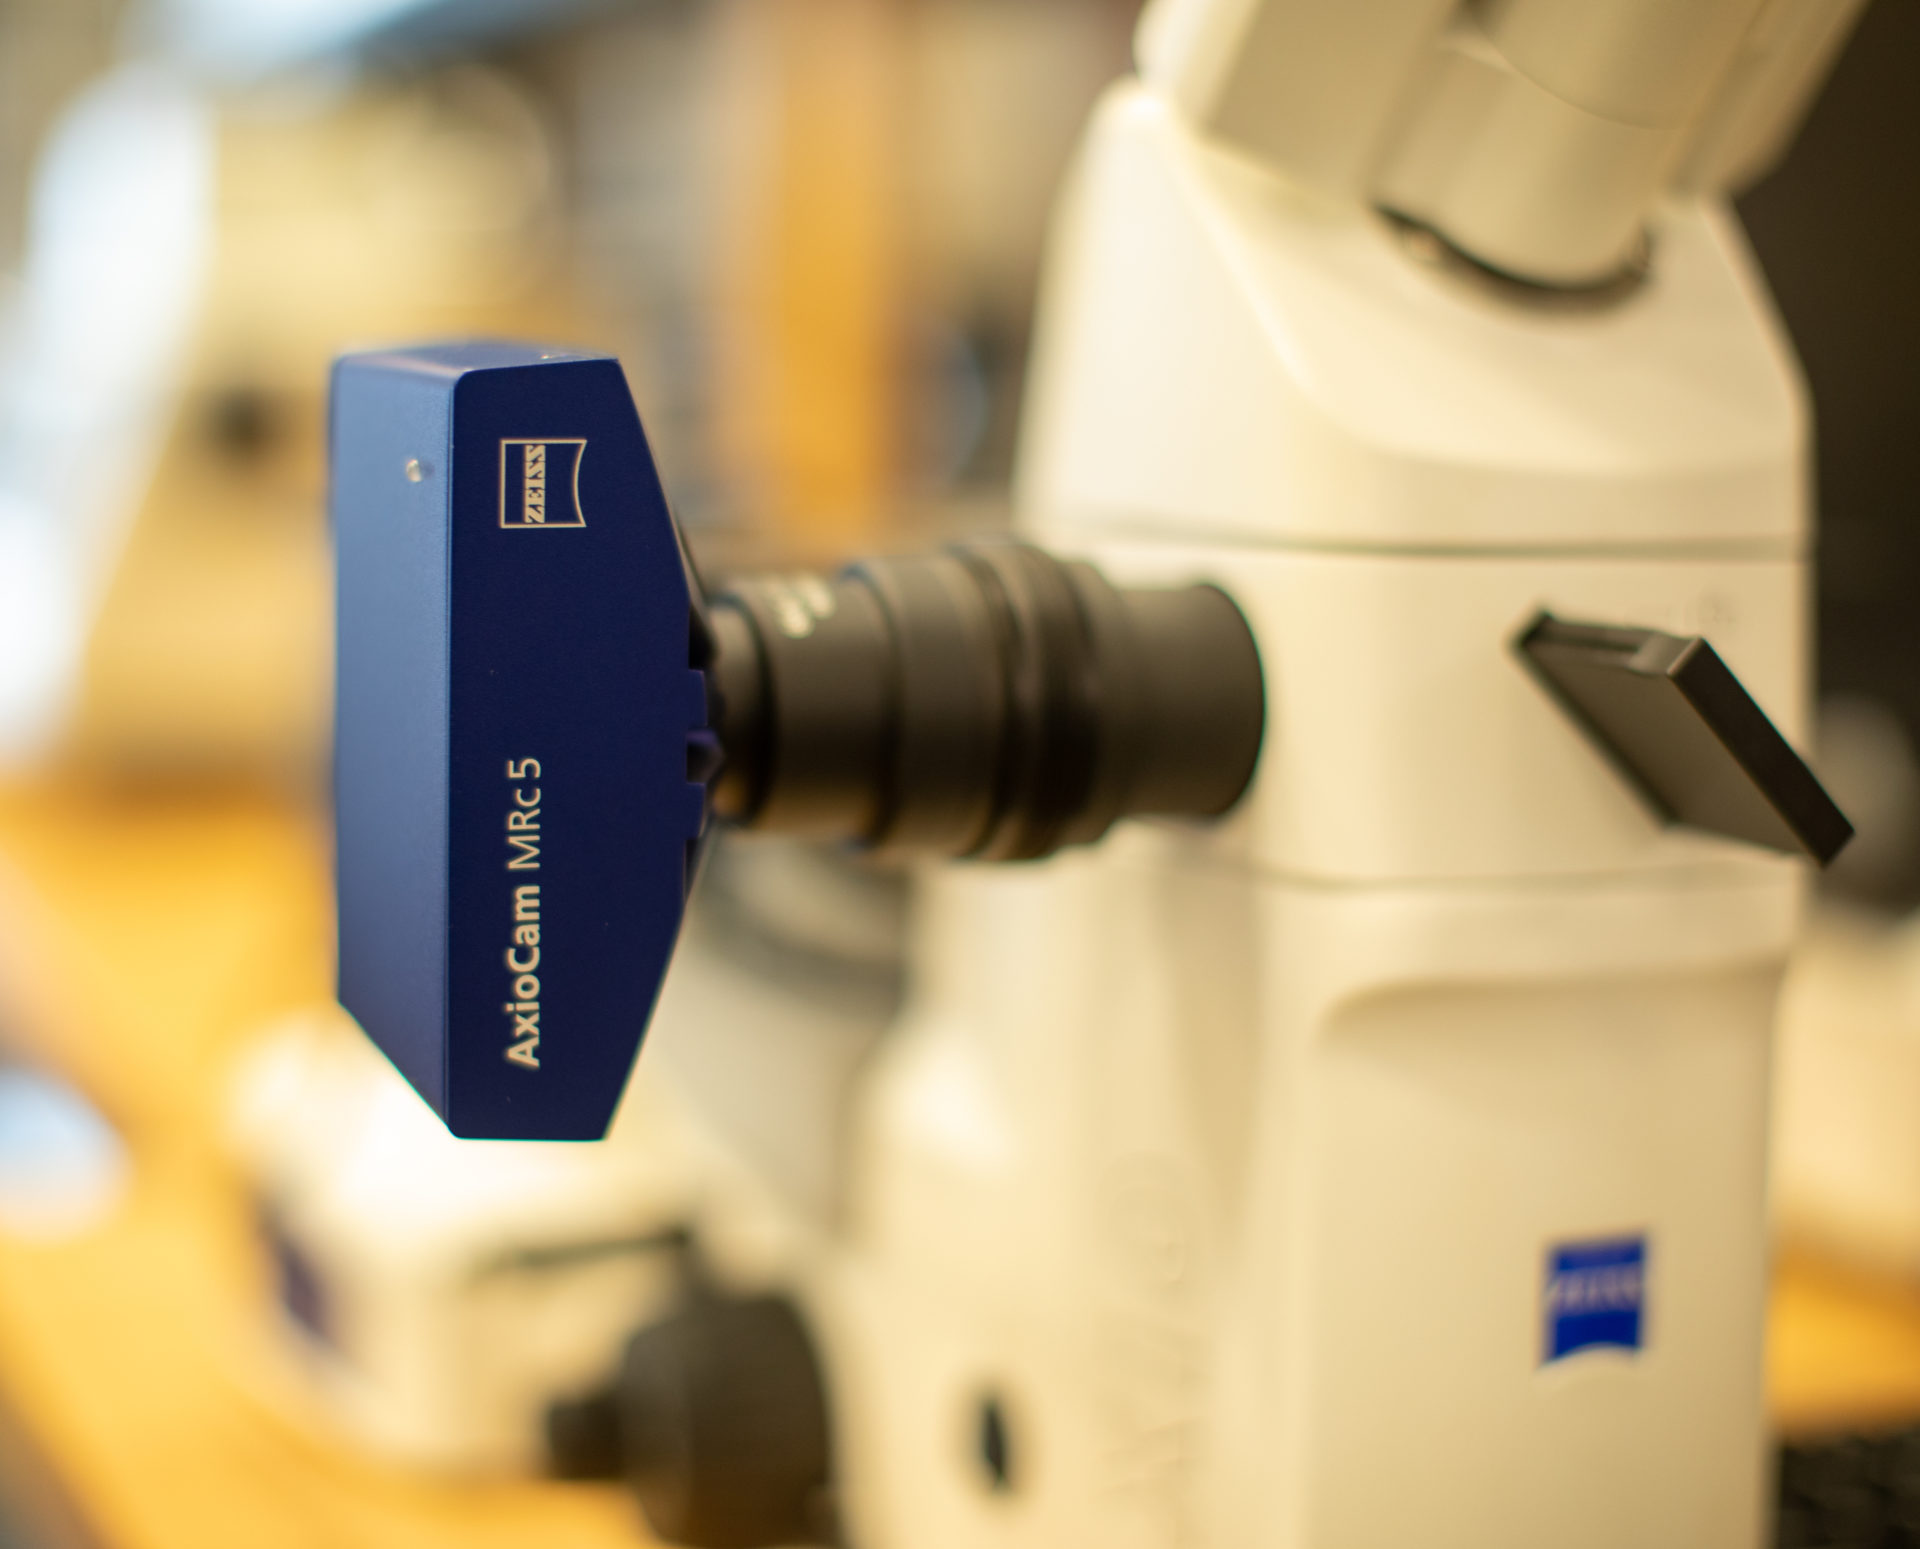 Microscope used in the Manufacturing lab